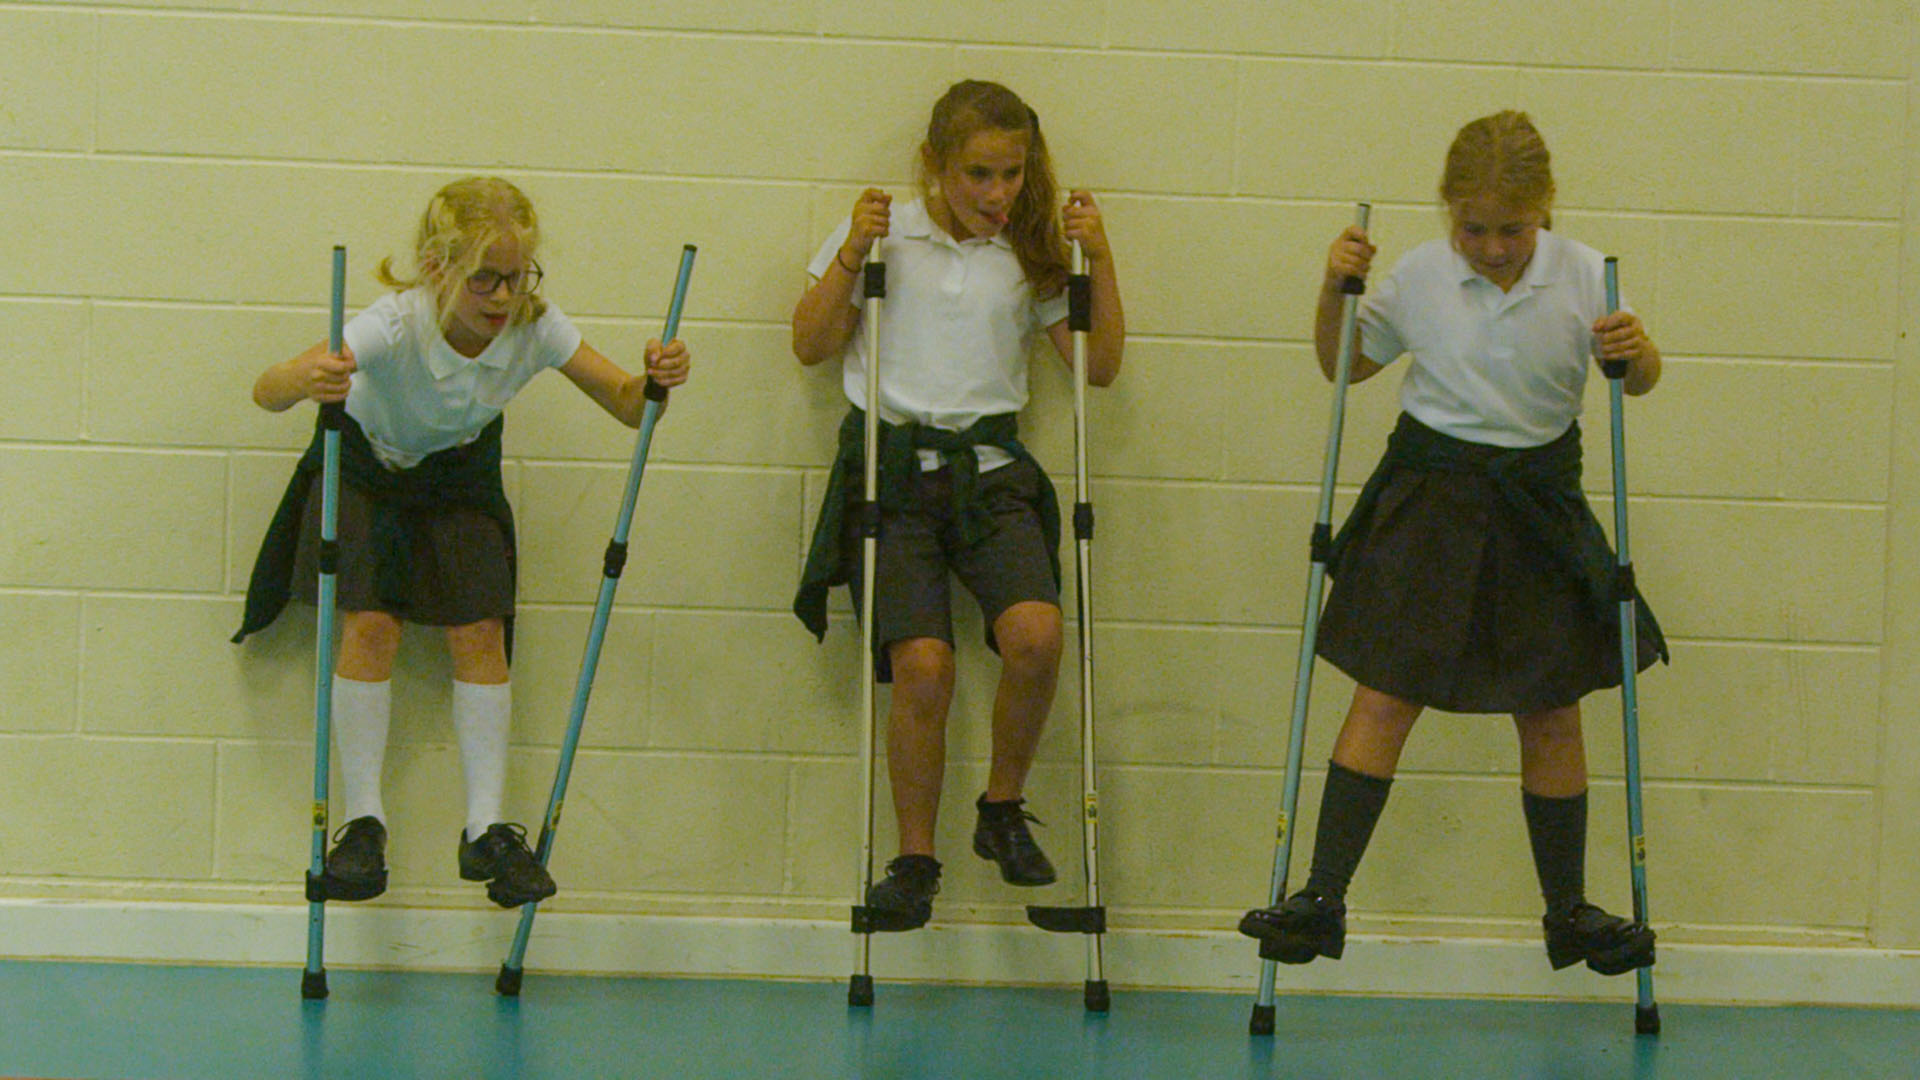 School children using stilts